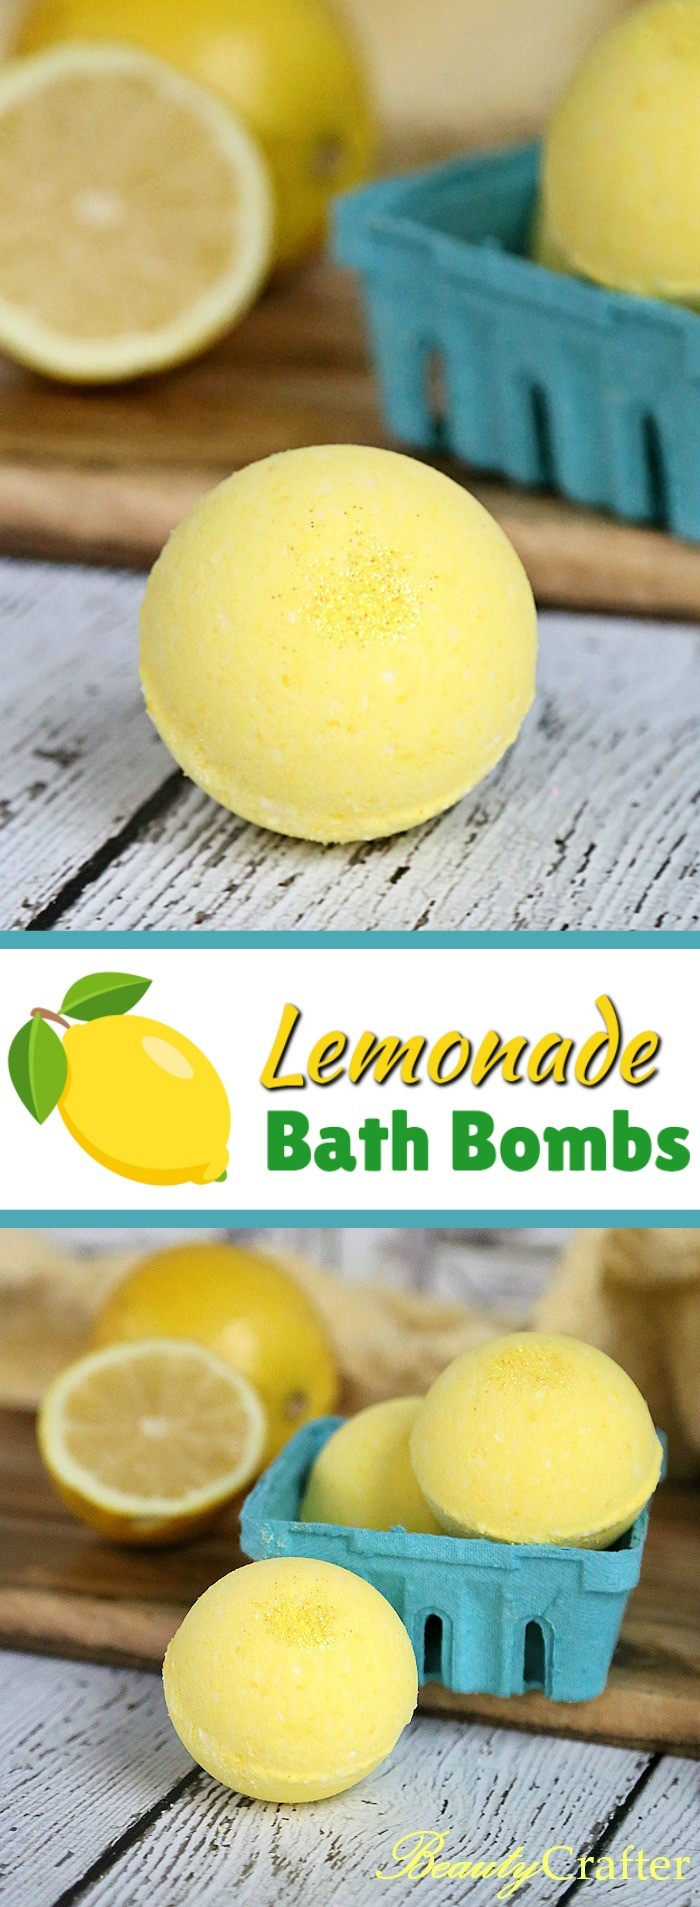 Lemon Bath Bombs Recipe - DIY Lemon Bath Fizzies #bathbombs